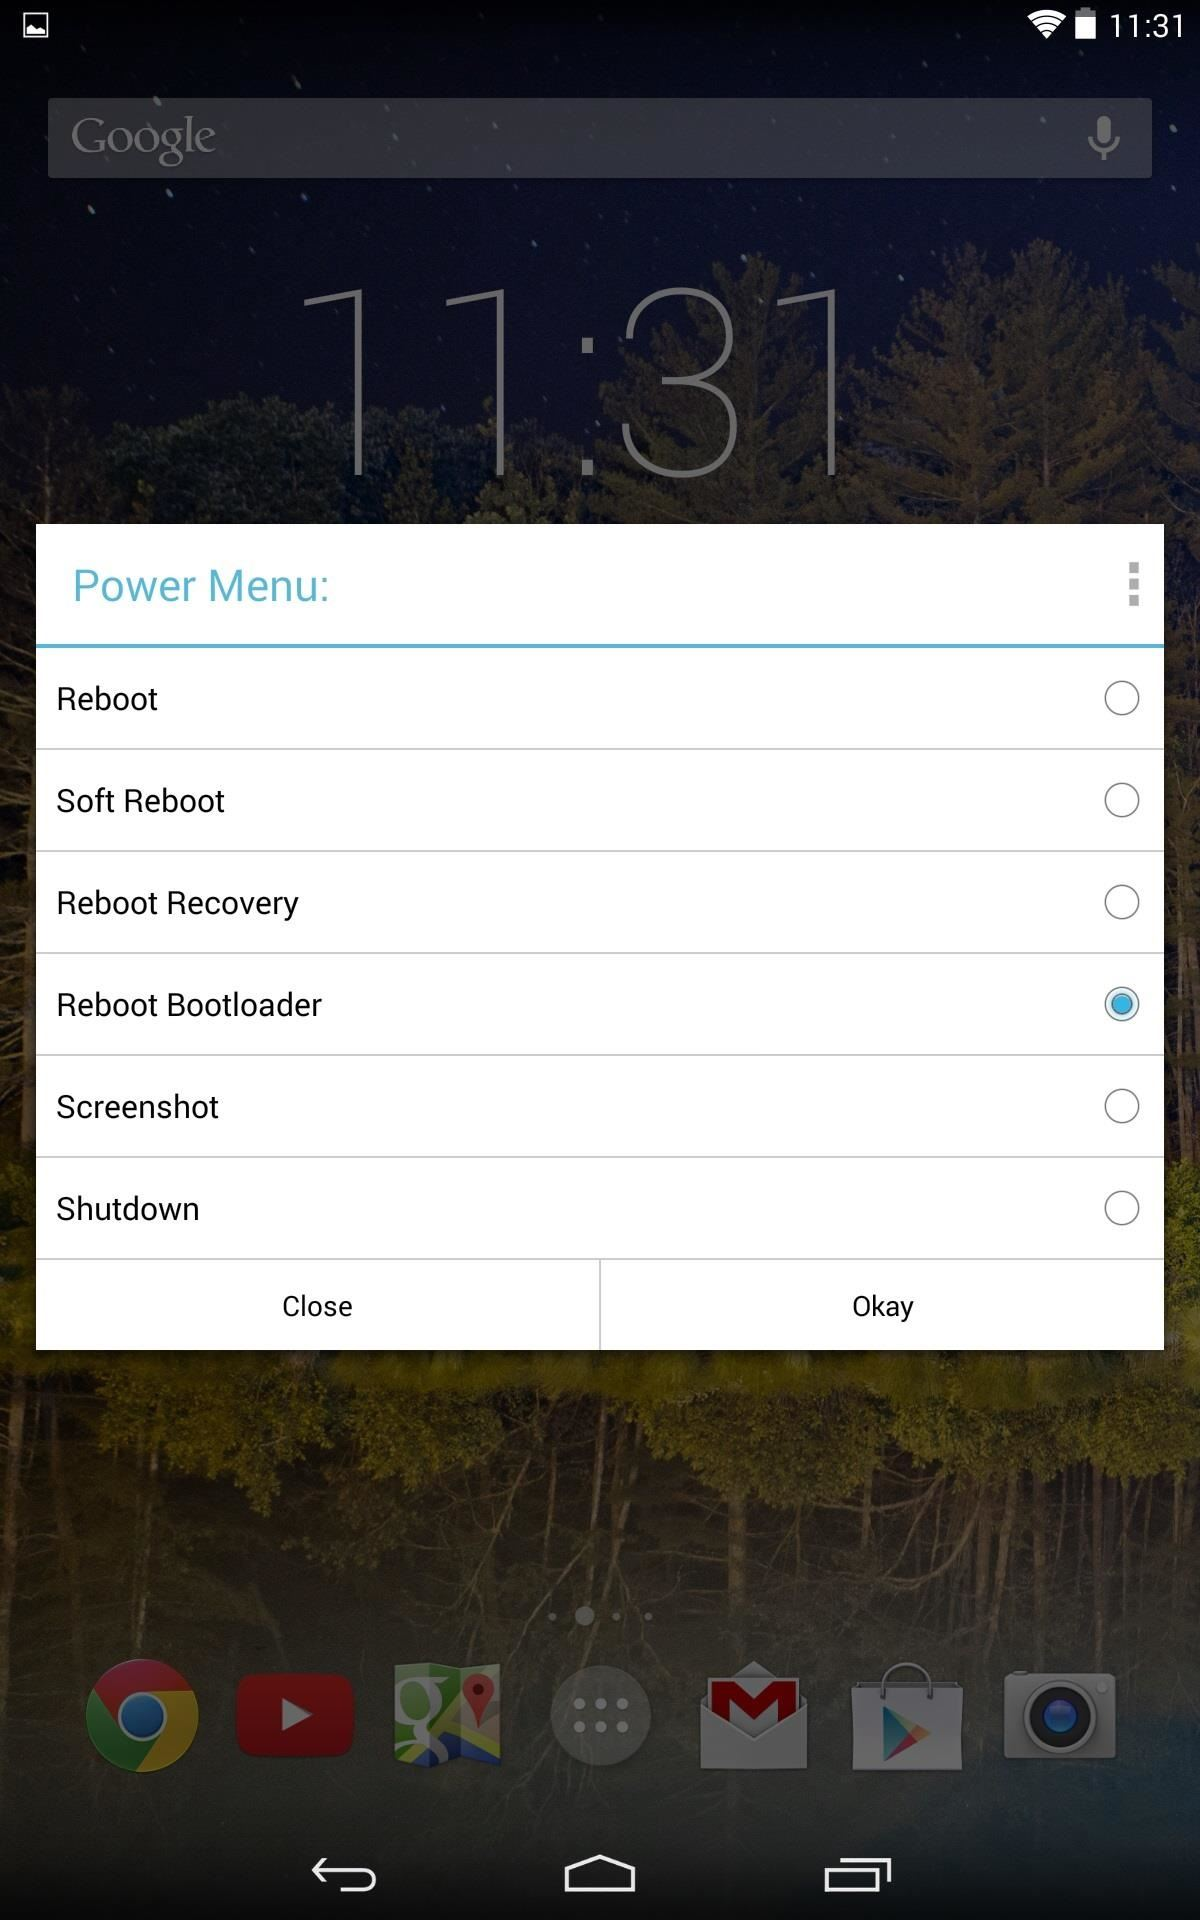 How to Add a Power Menu to Your Nexus 7 to Reboot into Fastboot or Recovery Mode More Easily